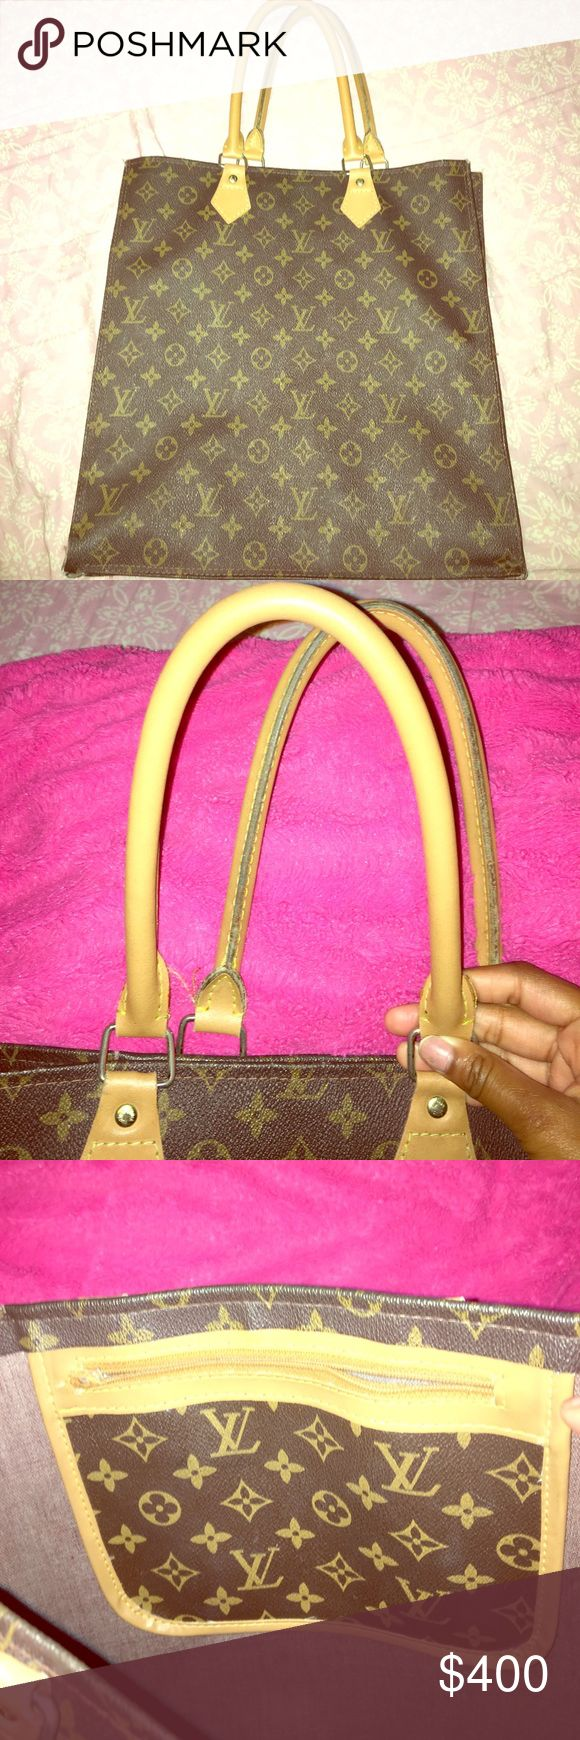 Vintage Louis Vuitton Tote Vintage Louis Vuitton Tote lightly used. Belonged to my grandmother and she passed it down to me and I never use it. Inside zipper is broken along with normal wear and tear so I'm willing to negotiate. Louis Vuitton Bags Totes